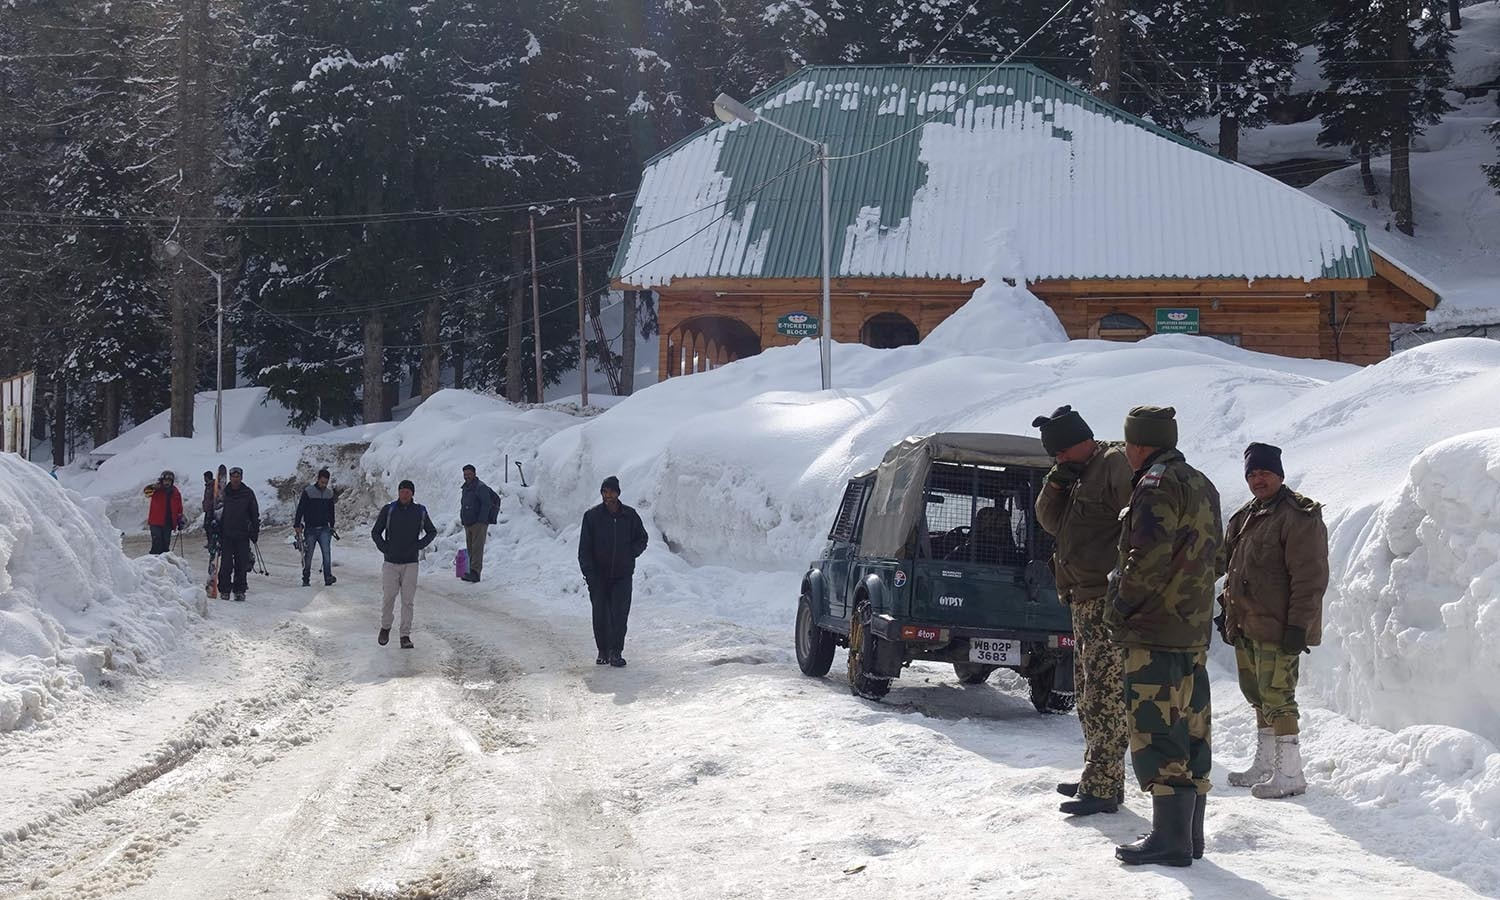 Indian security officials stand near the gondola at Gulmarg in Indian-held Kashmir.─AFP